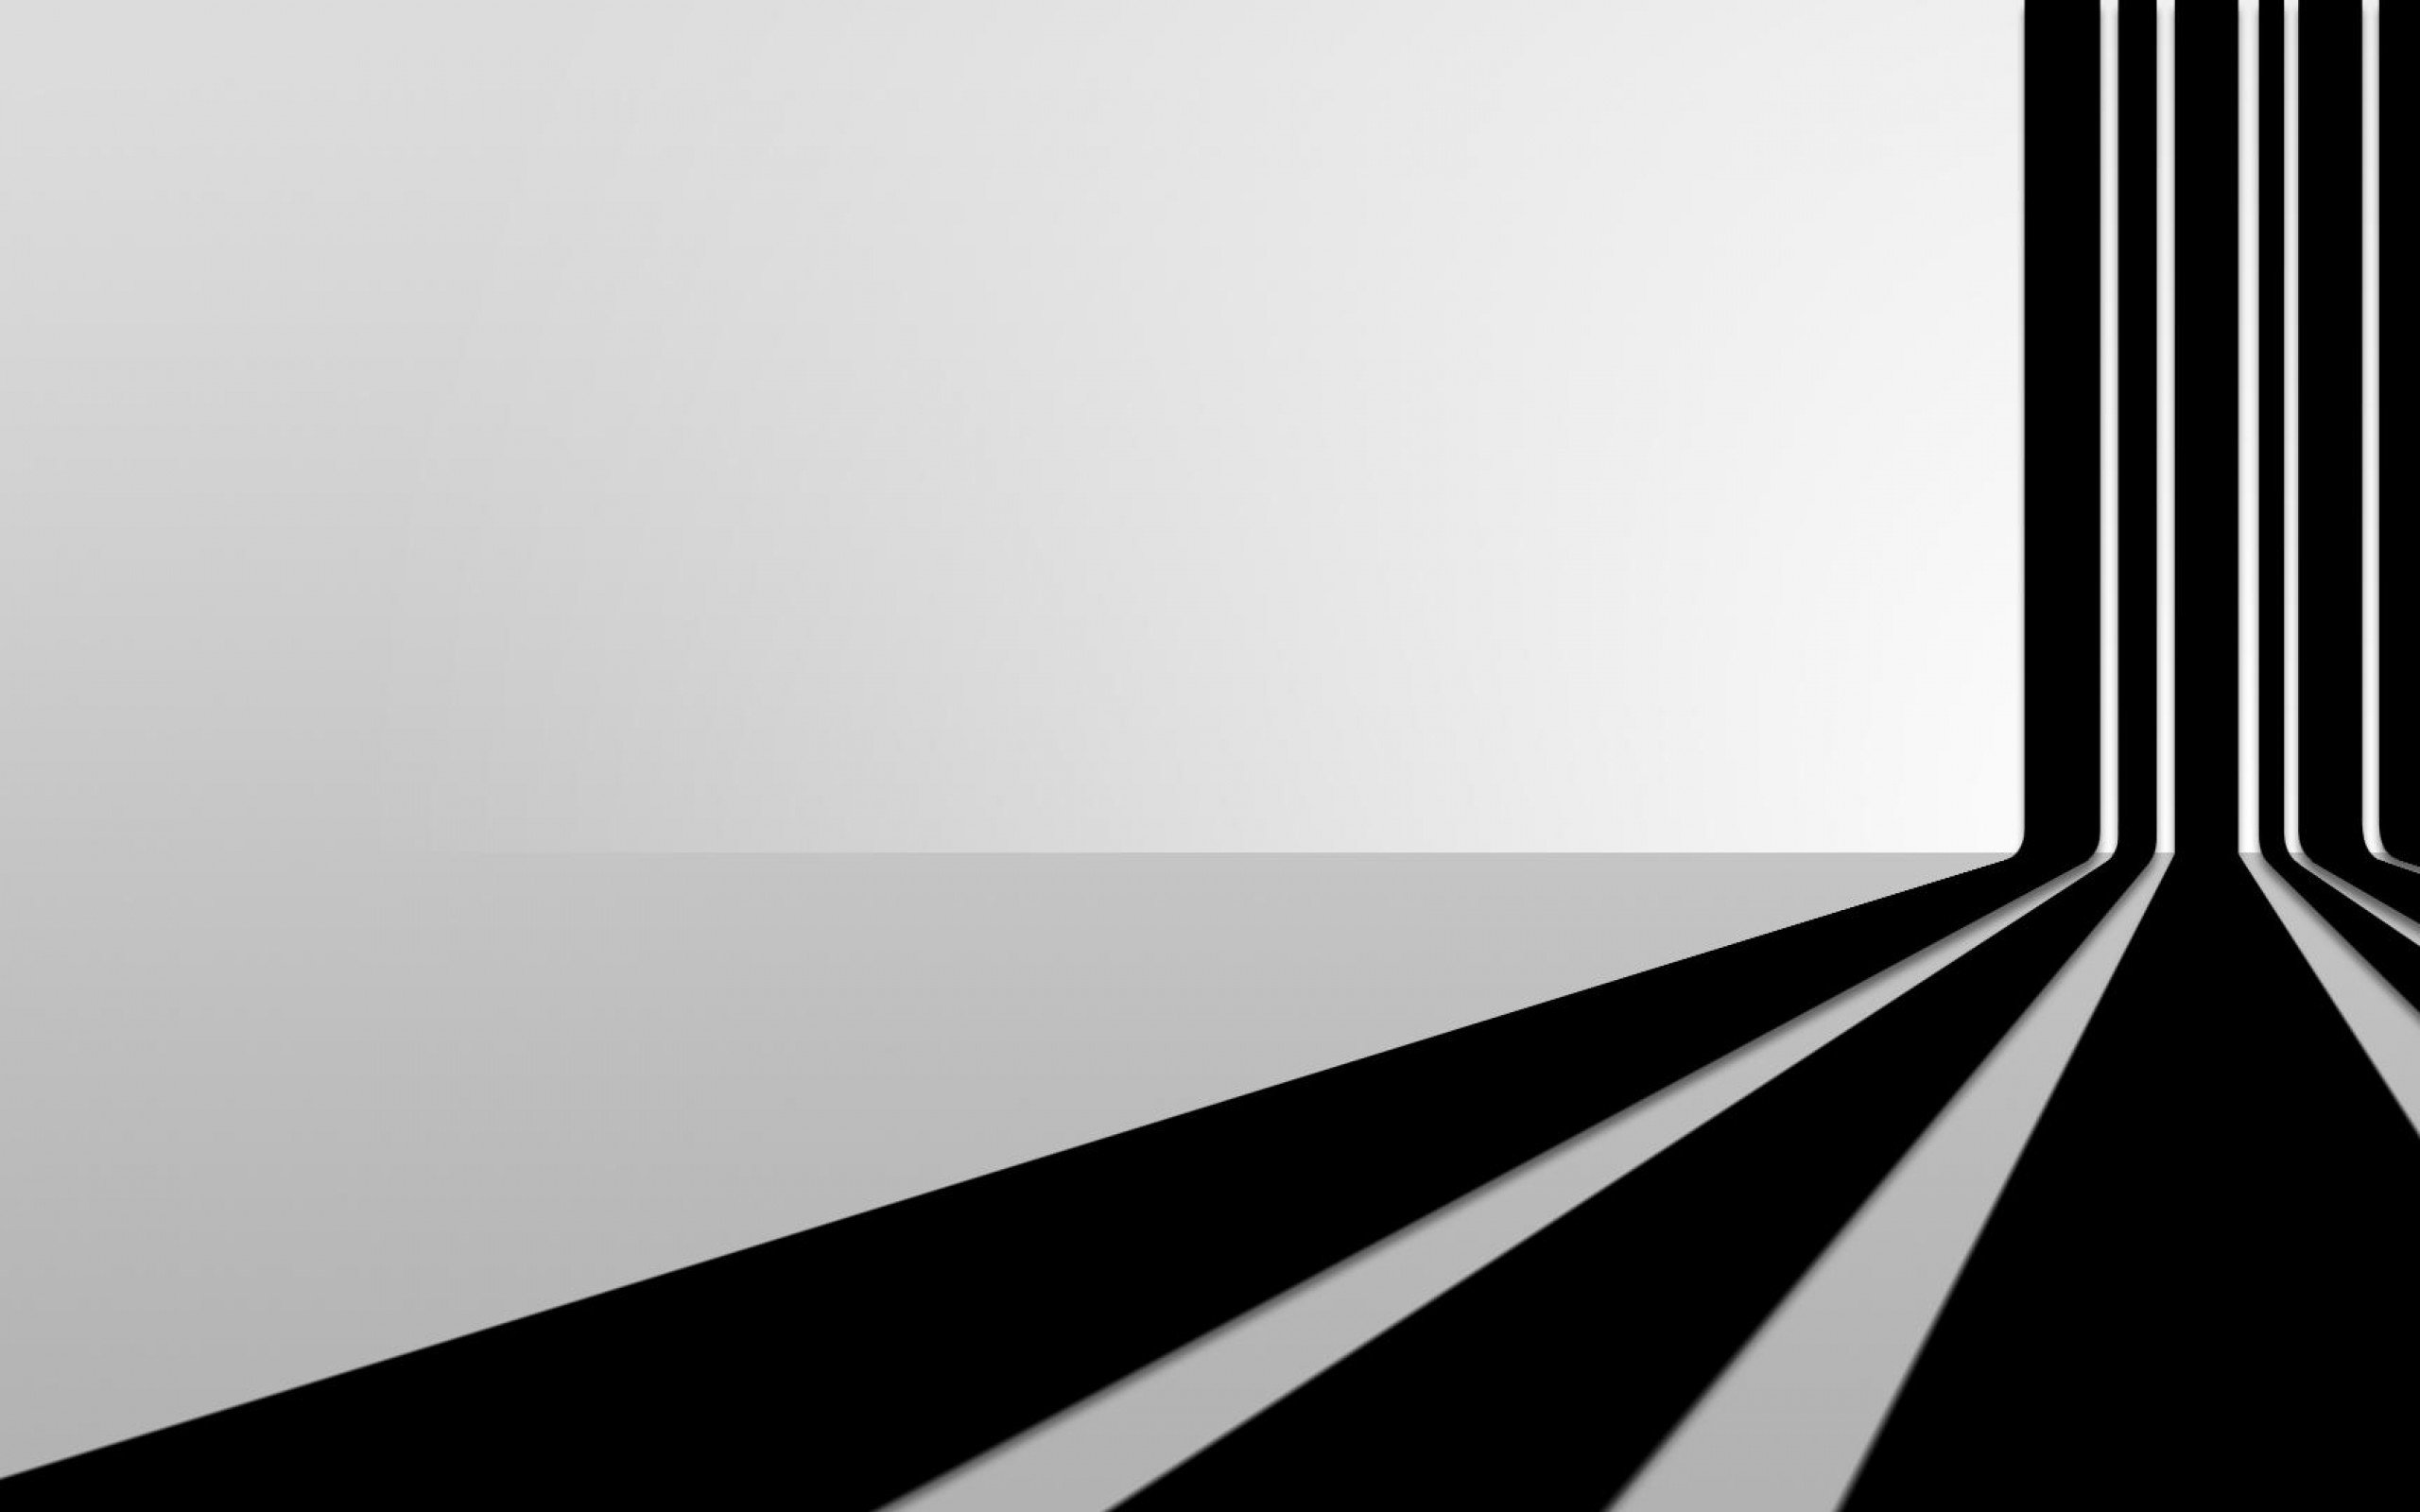 Black And White Backgrounds Download 2560x1600